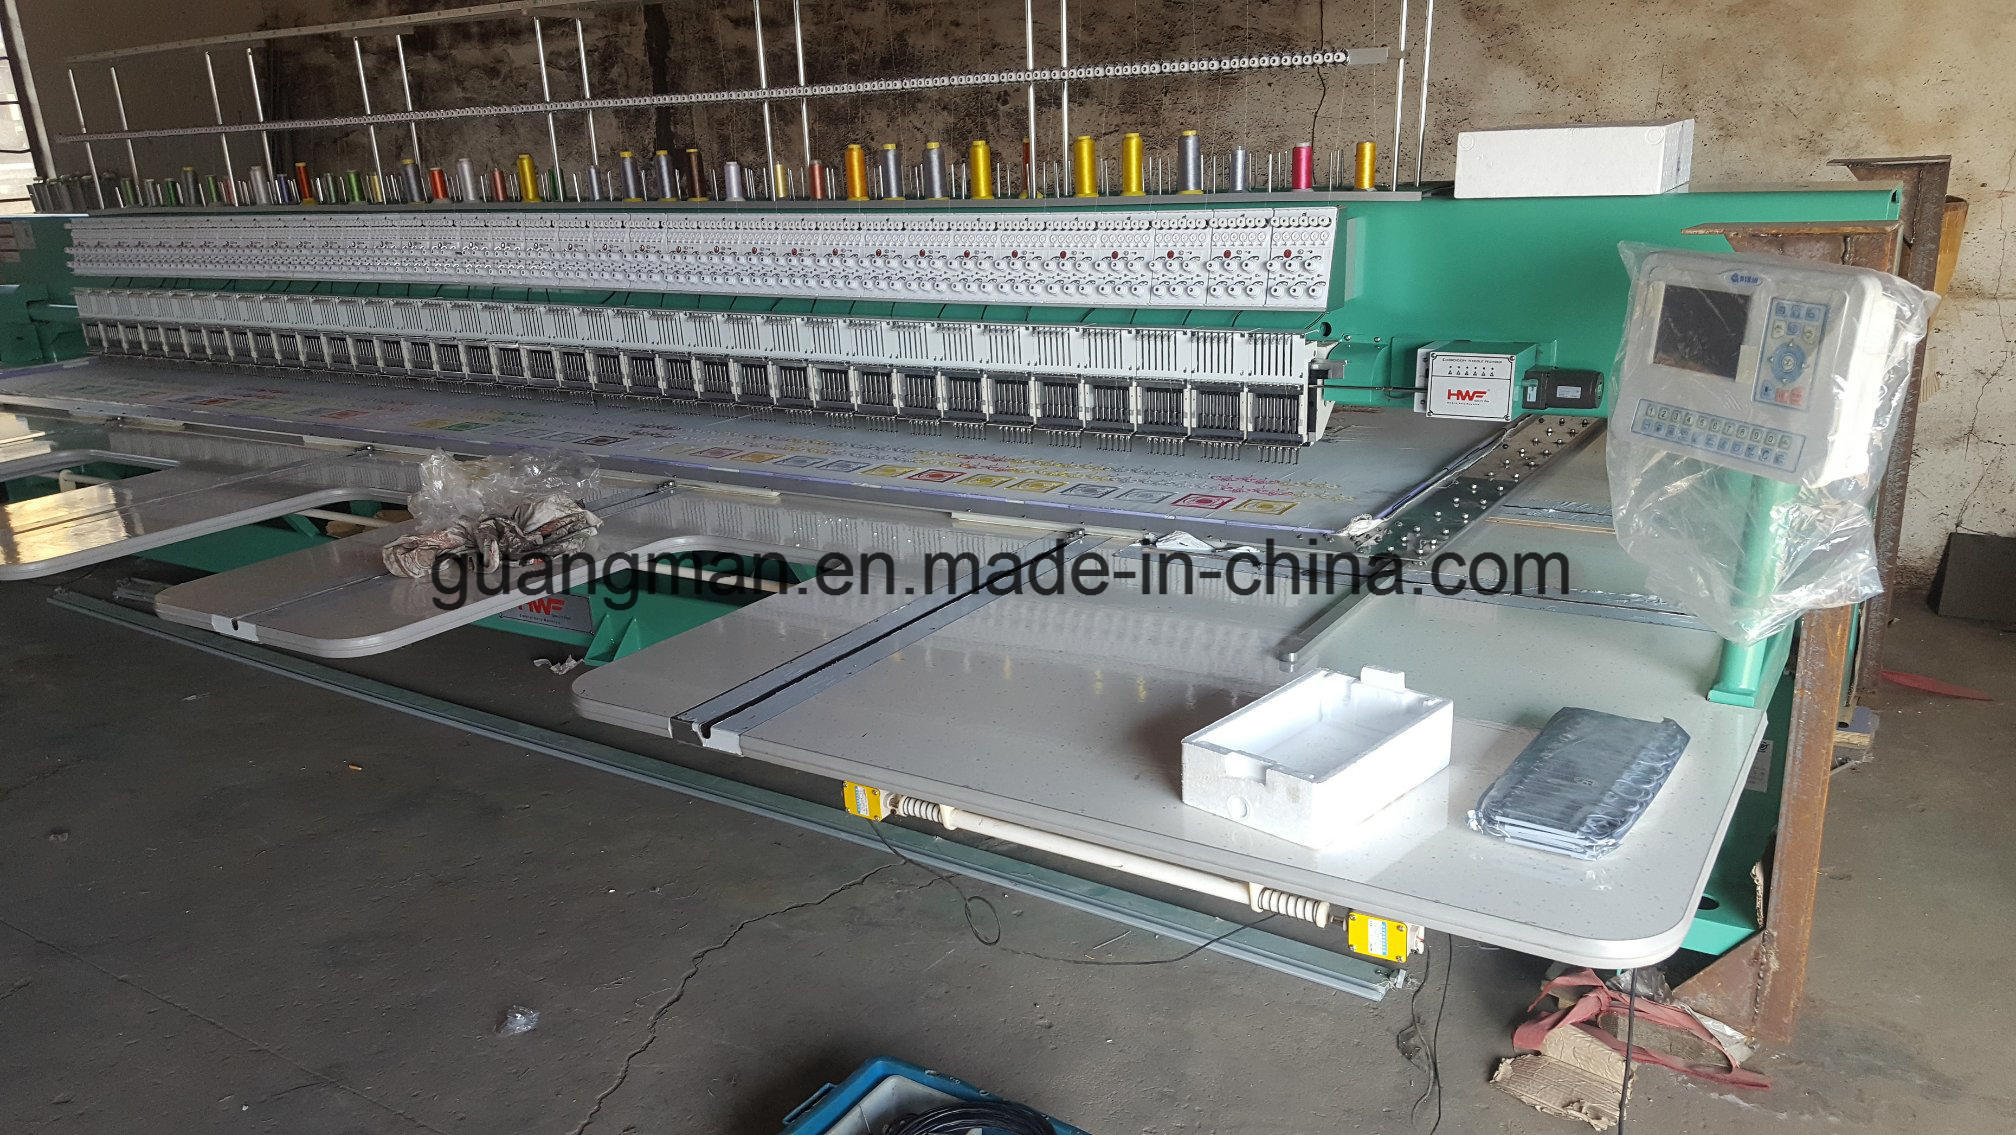 Hye-FL 636/125*550*1300 Flat Embroidery Machine